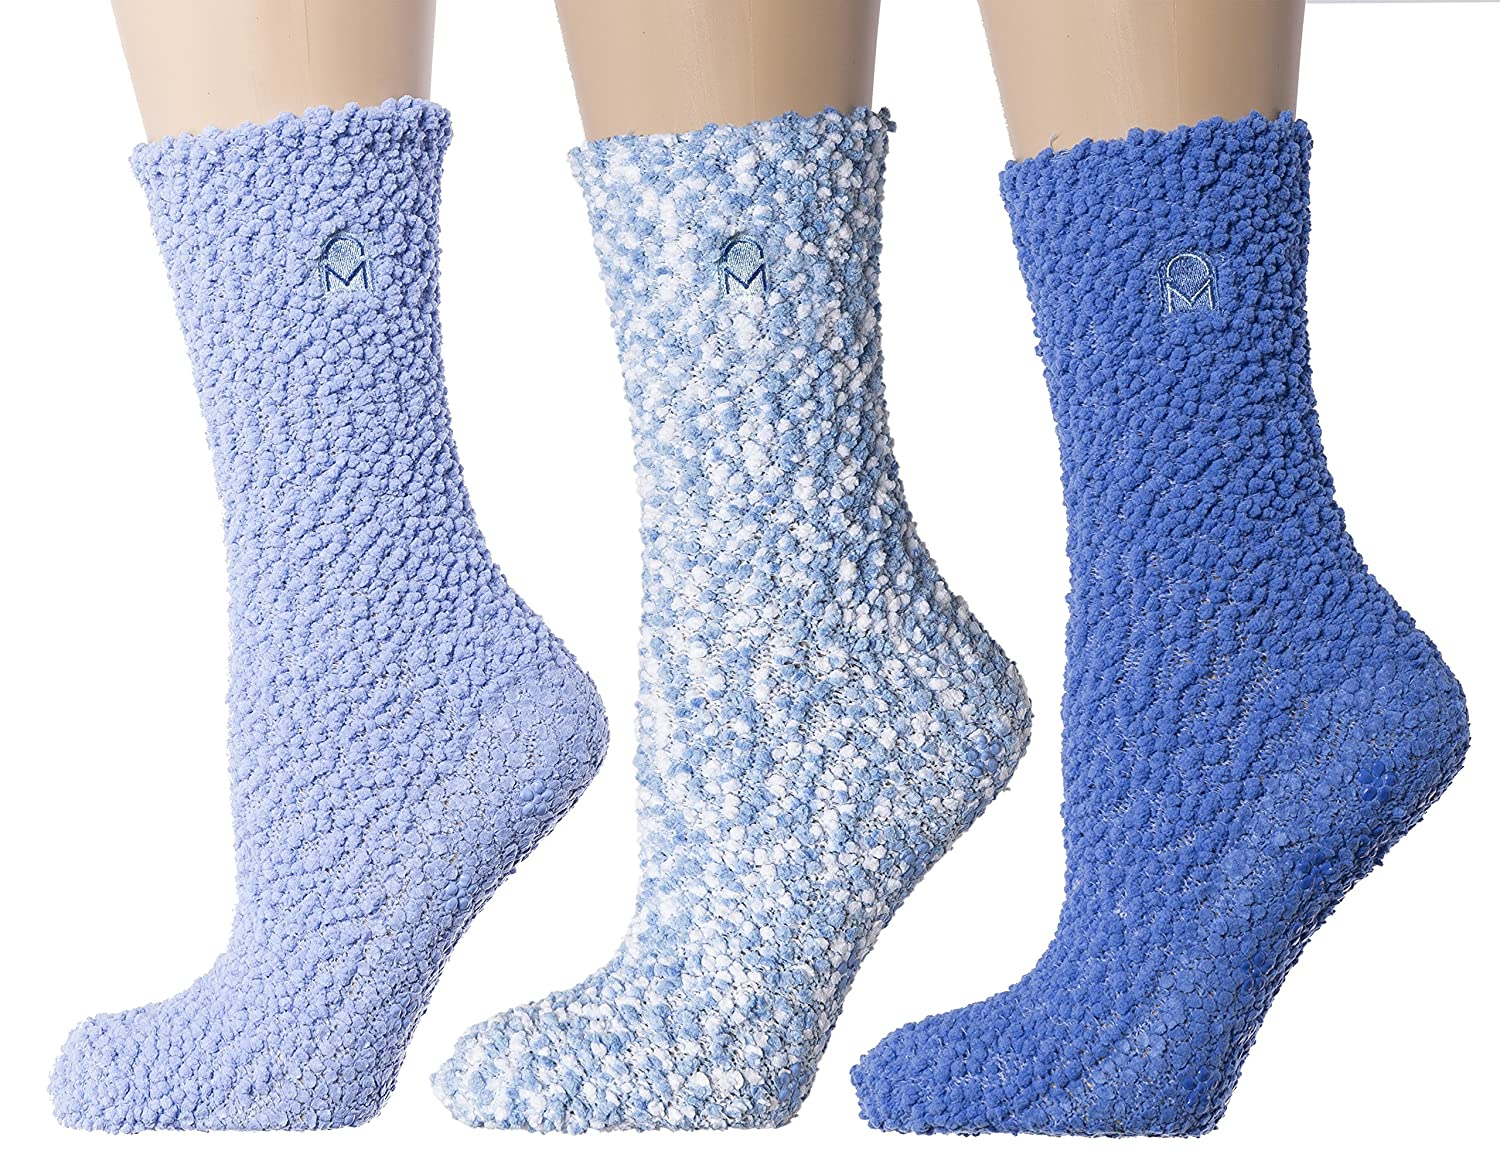 961fbf2e2 3-Pairs Womens Noble Mount Warm and Cozy Popcorn Yarn Winter Crew Socks -  Set A1 at Amazon Women s Clothing store